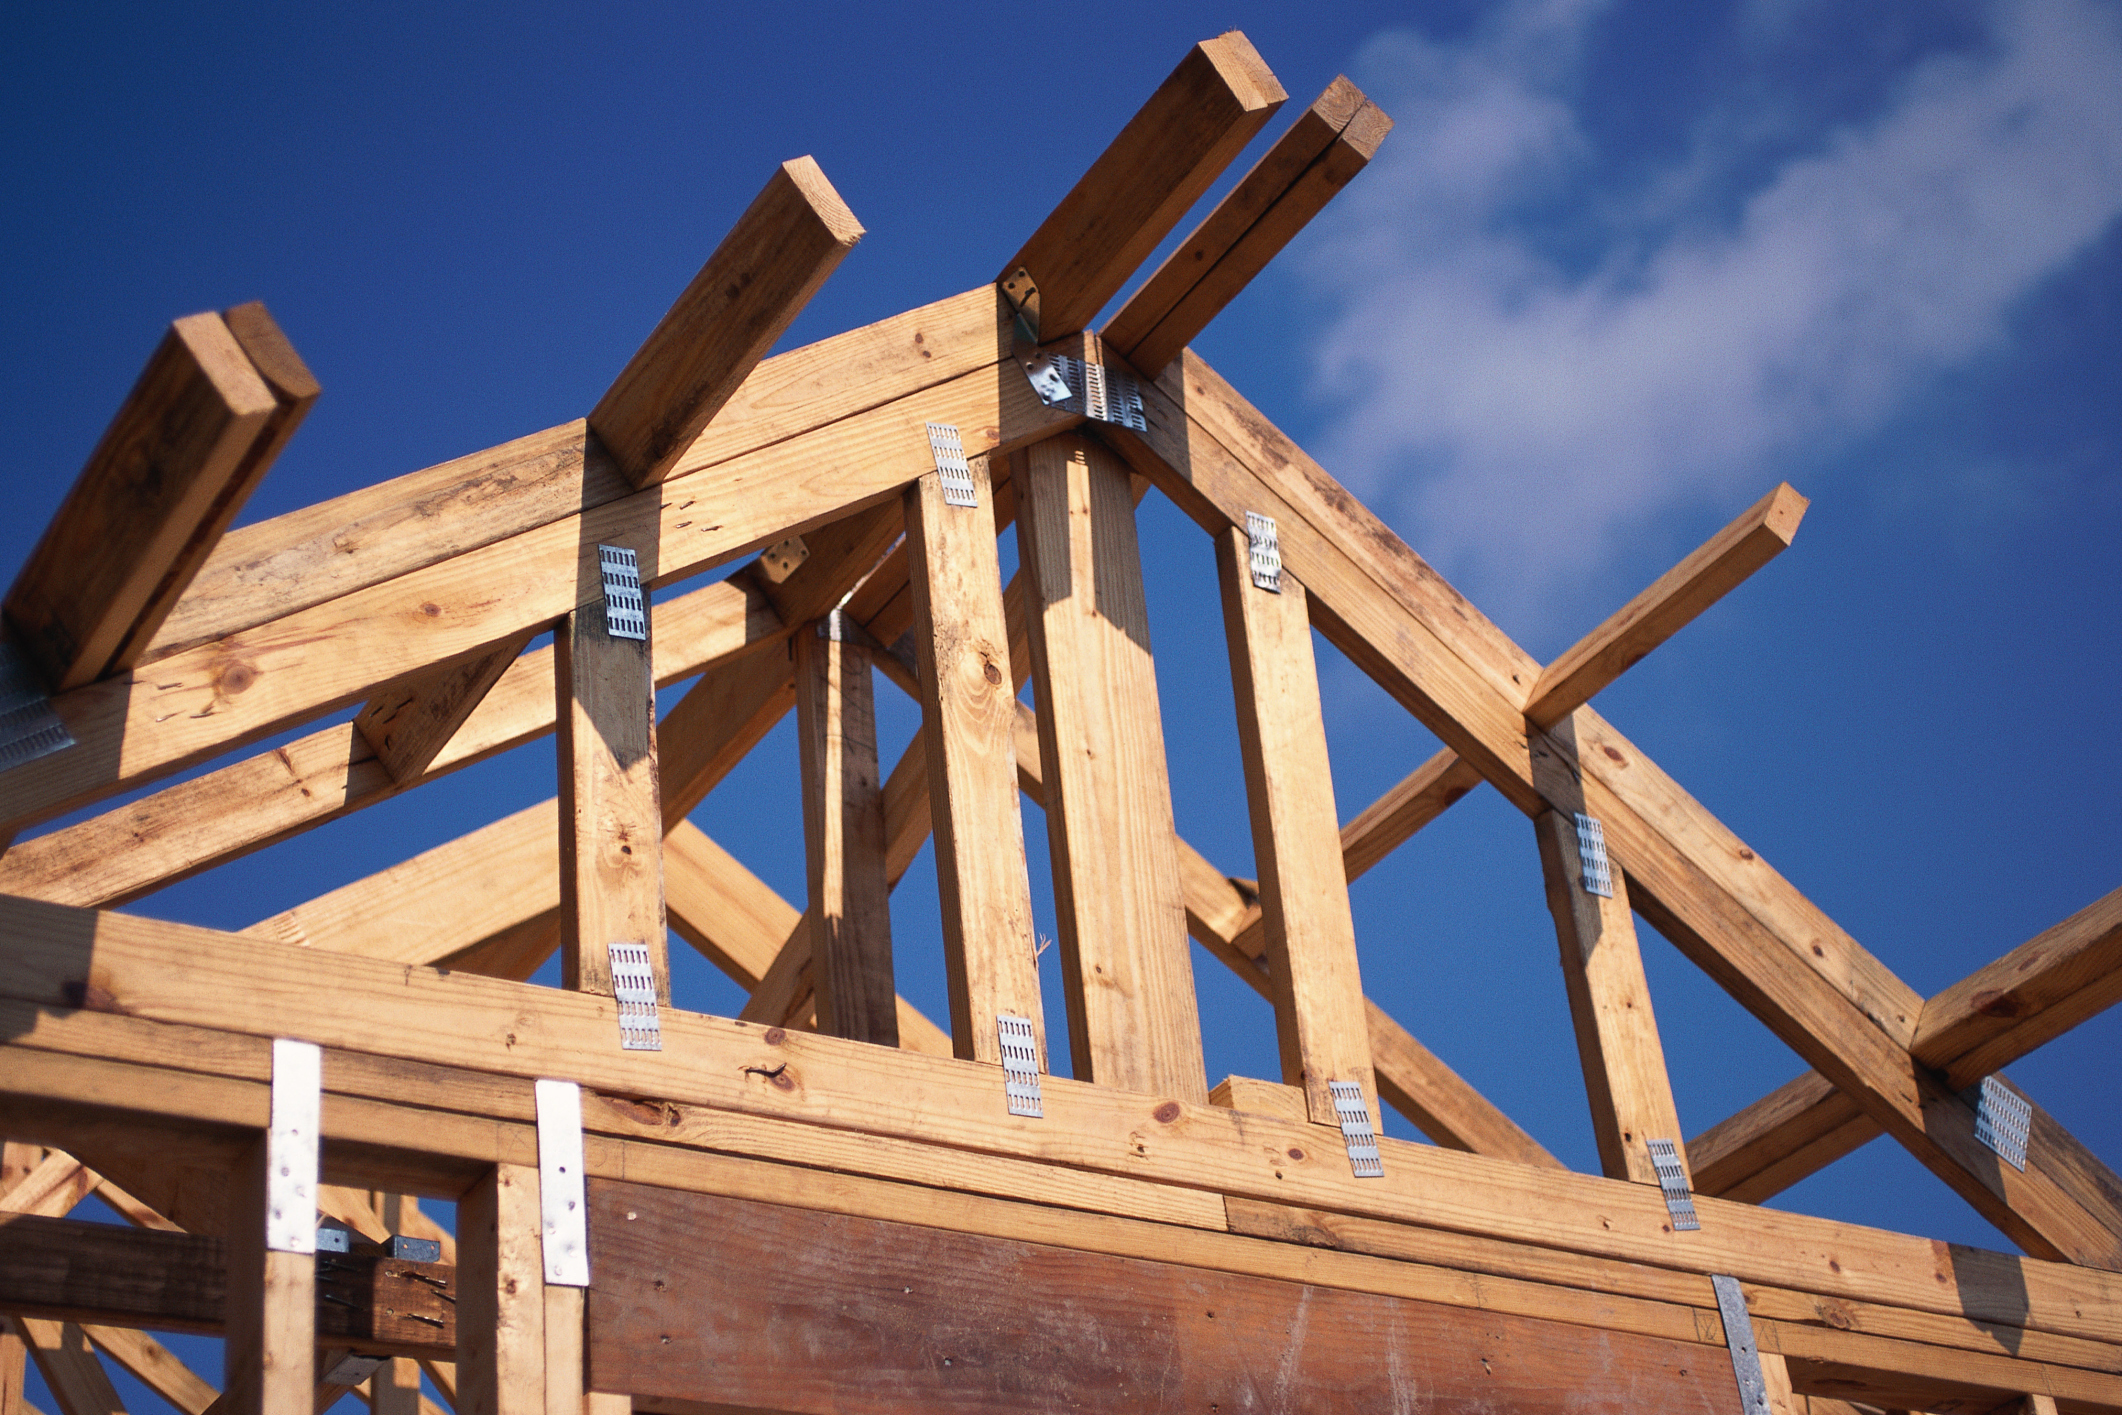 Latest nhbc figures report christmas cheer for house building for Houses to build